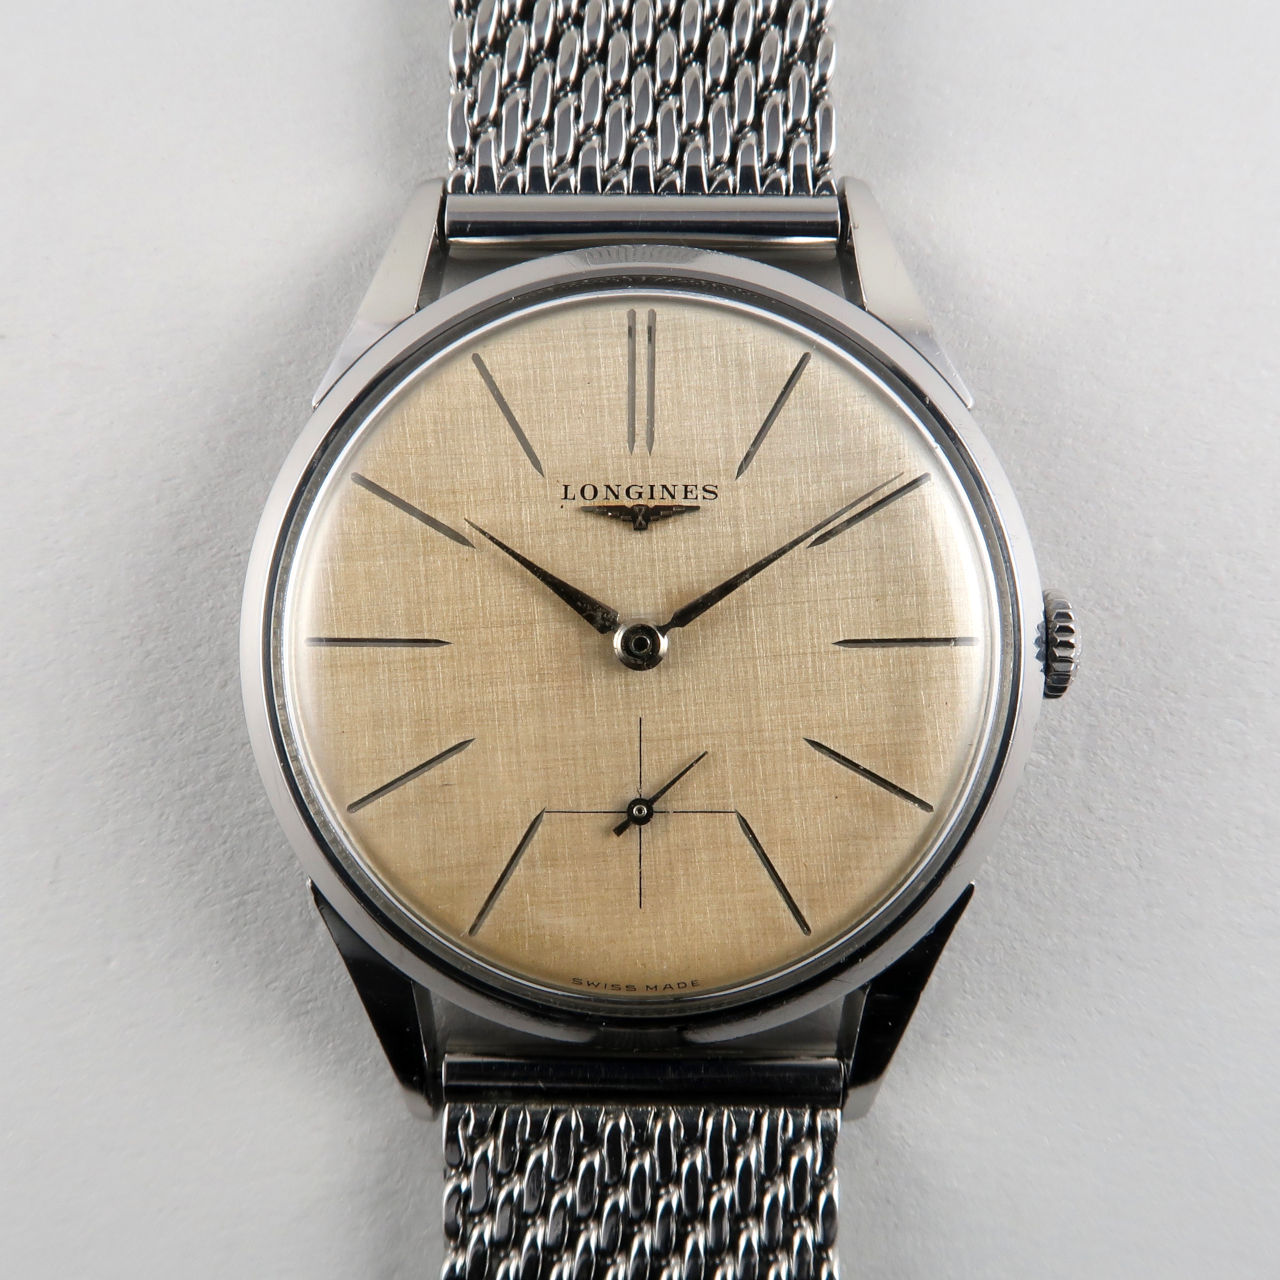 Longines Ref. 7111 -1 invoiced 6 May 1960